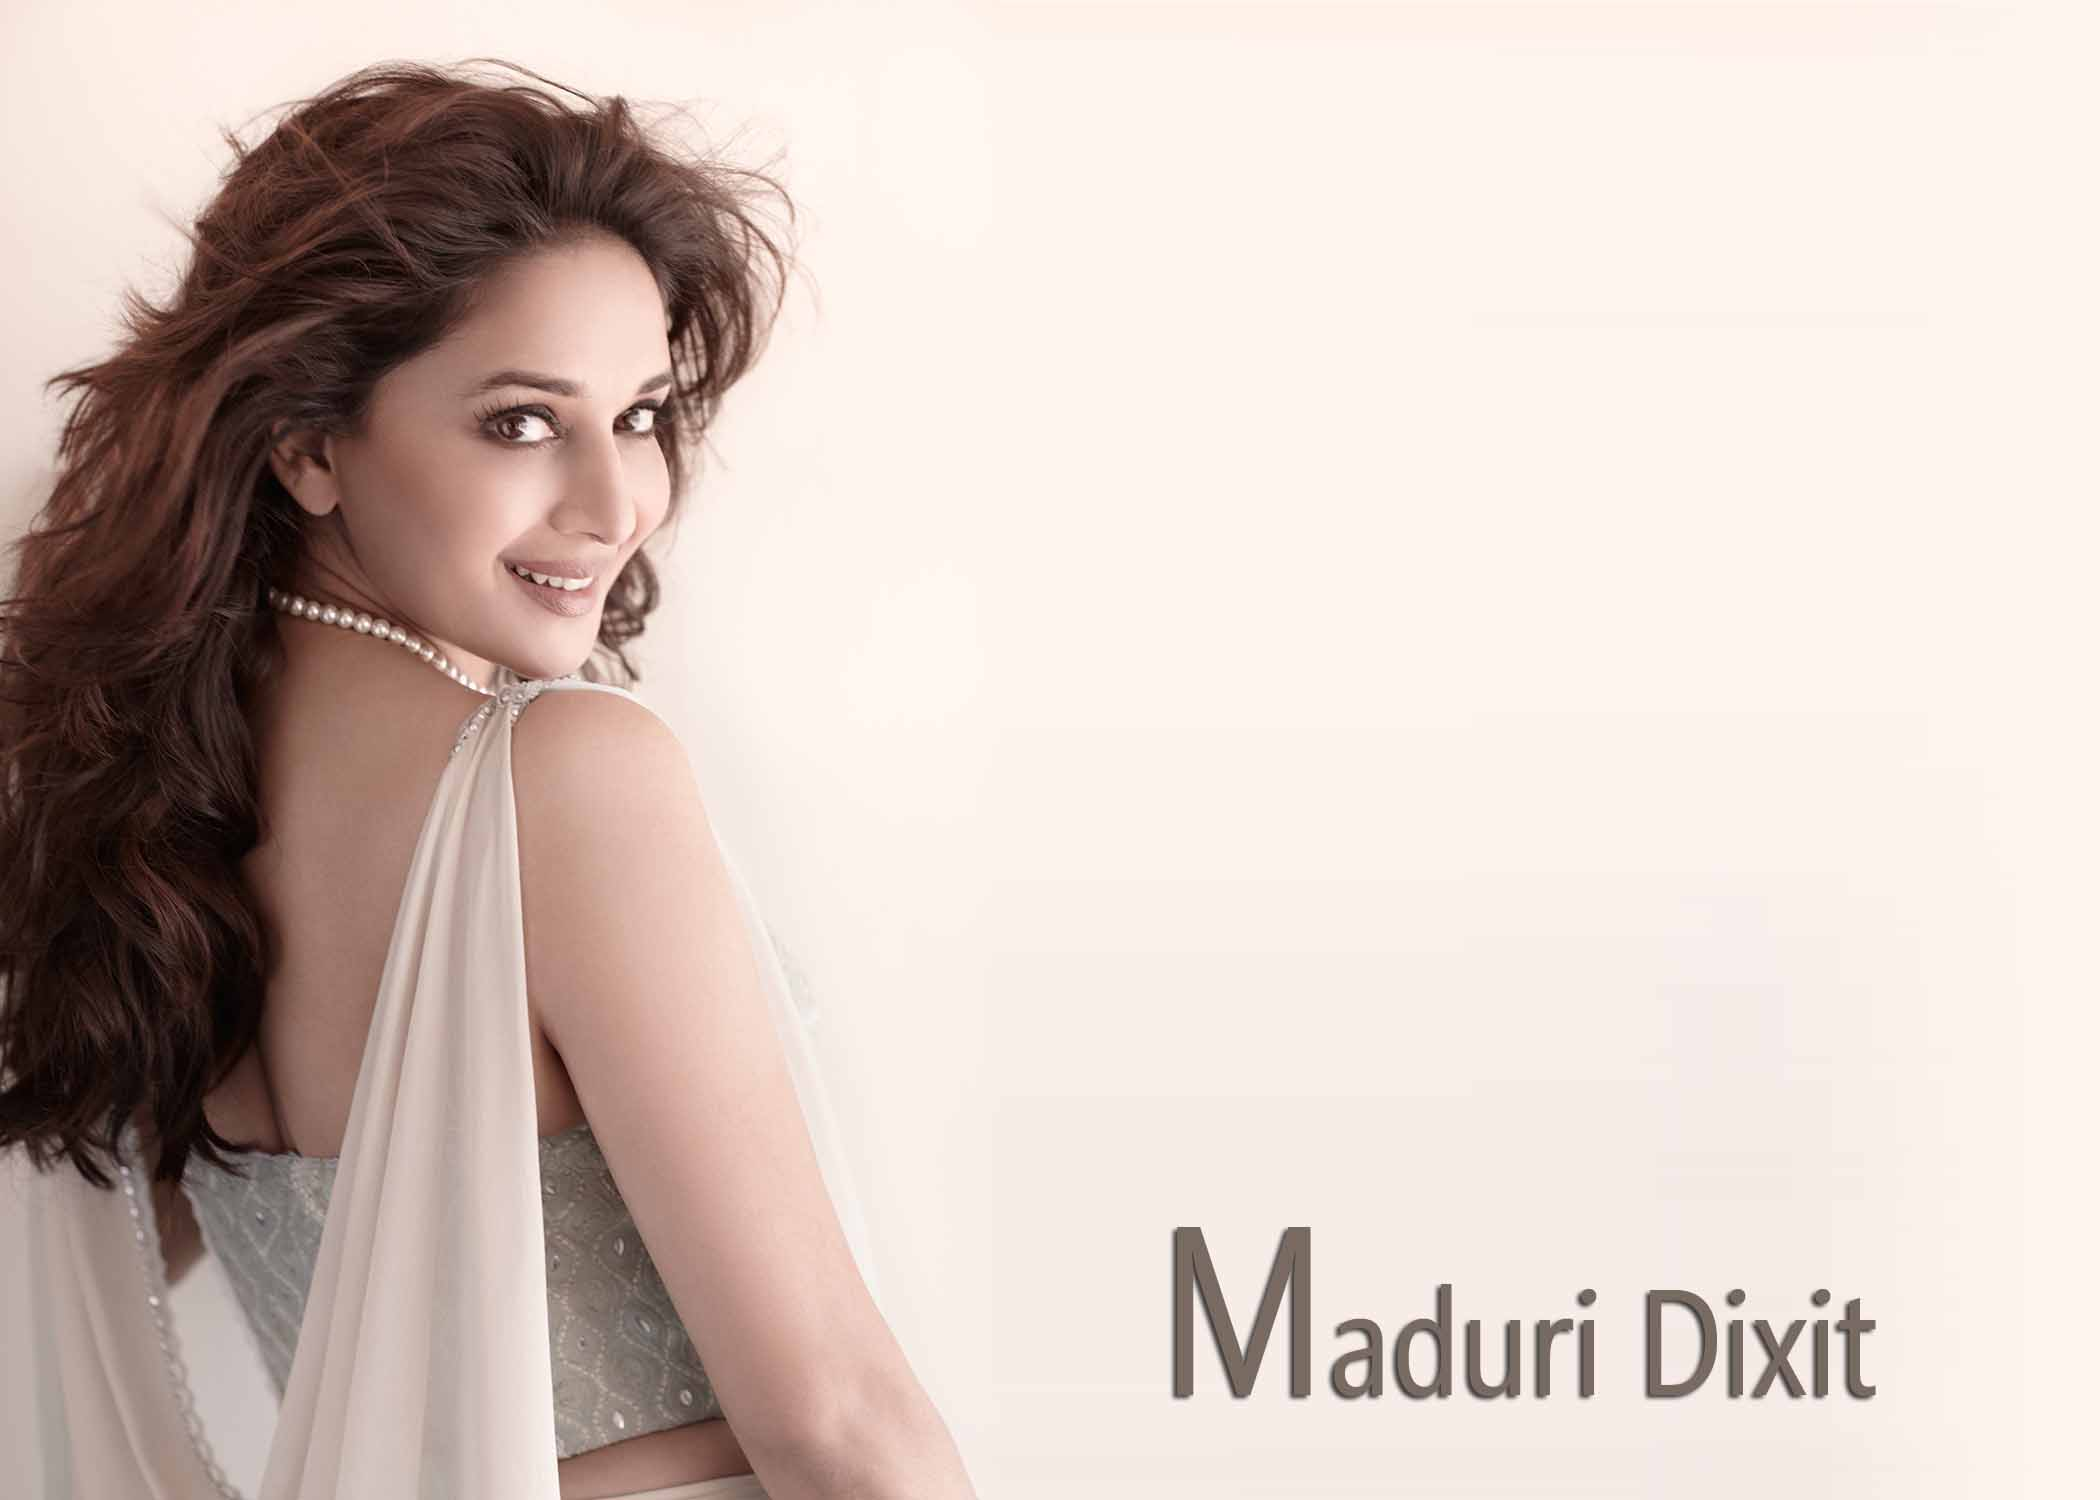 madhuri-dixit-free-wallpapers-and-backgrounds